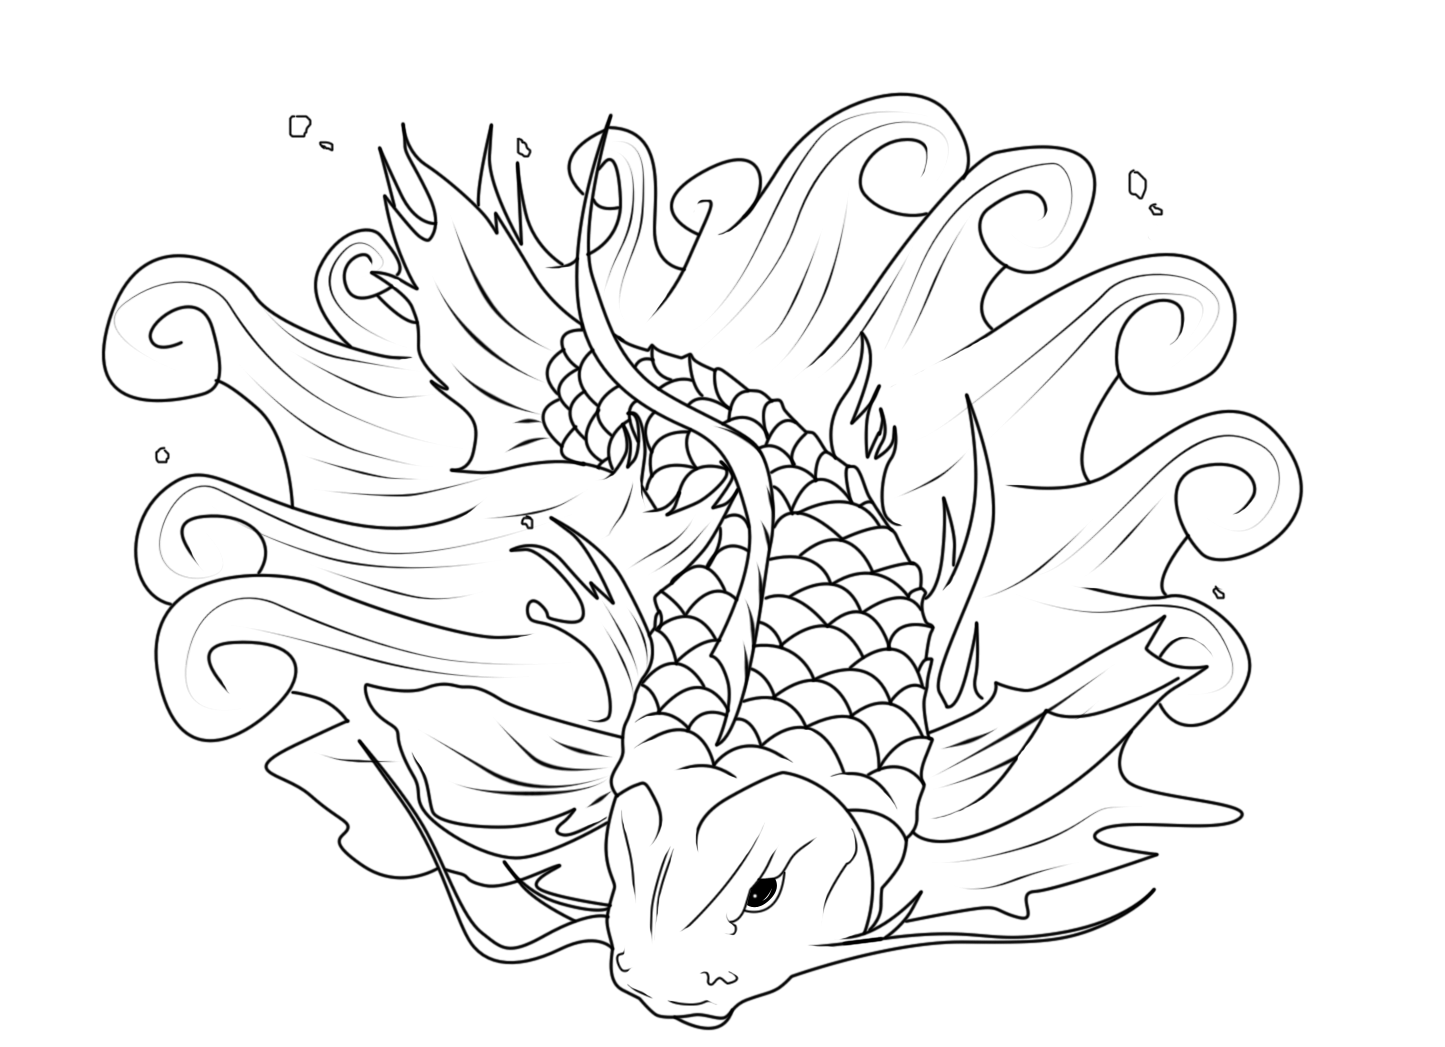 japanese fish coloring pages - photo#3